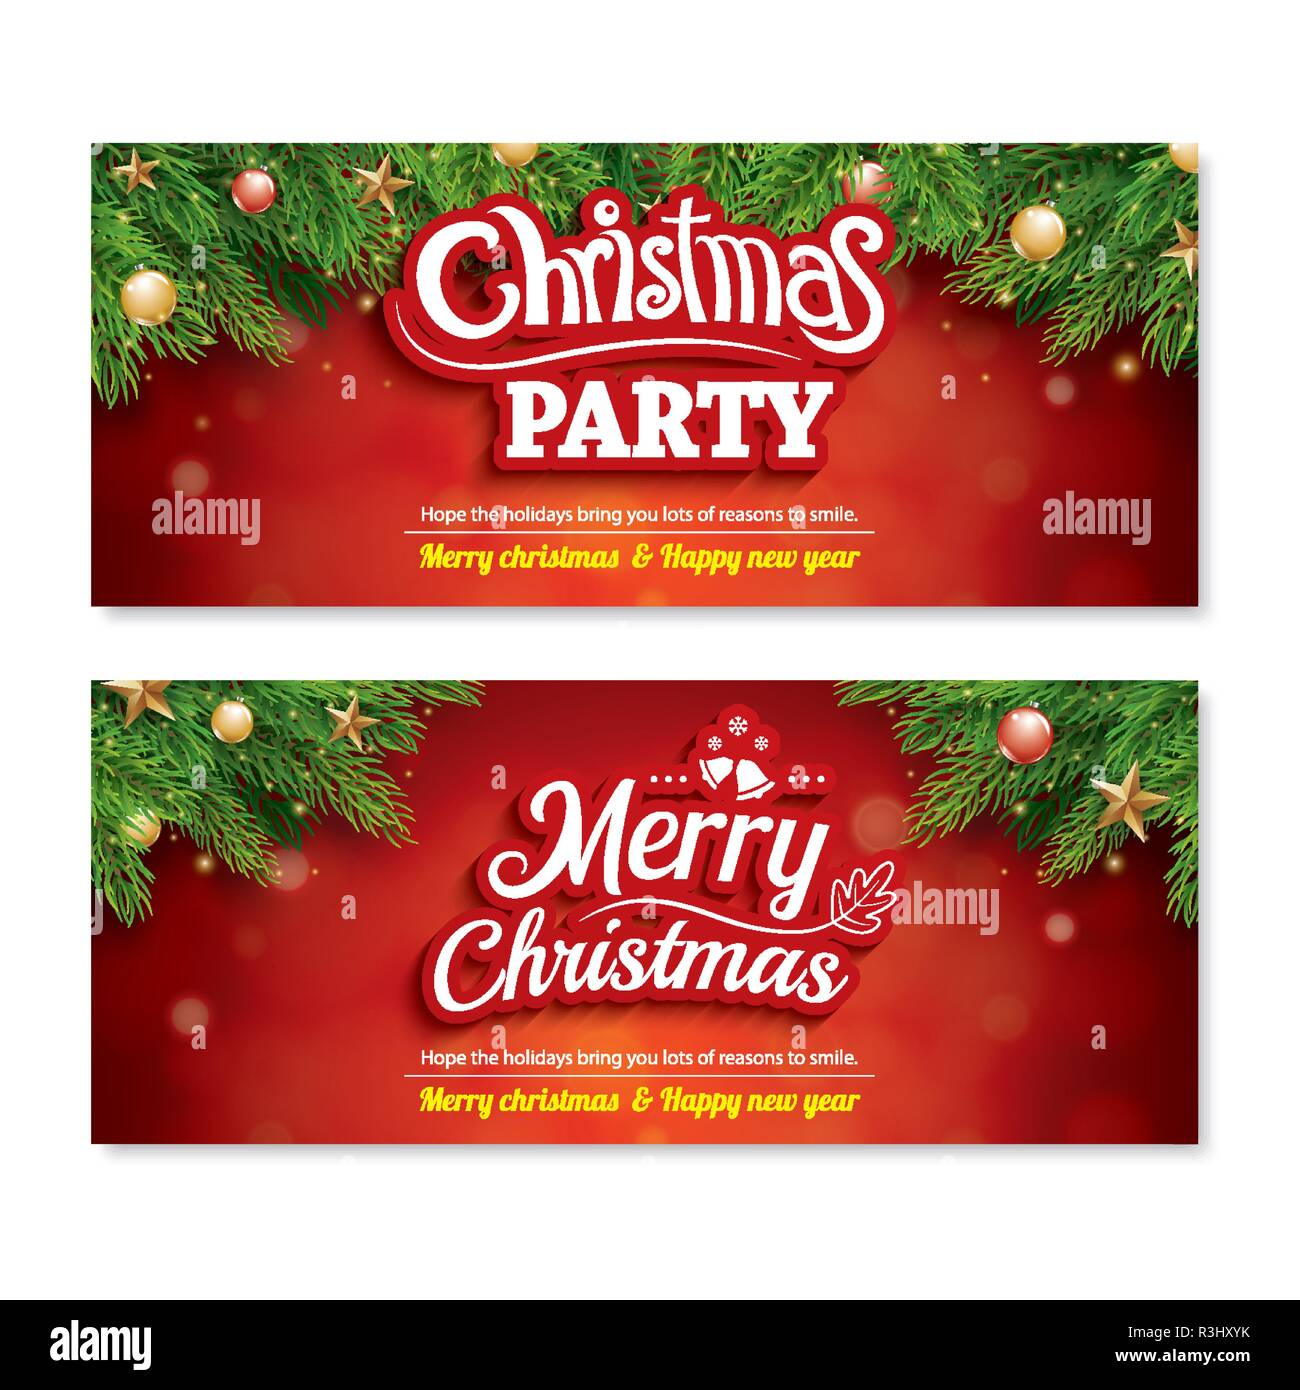 Merry Christmas Invitation Party Poster Banner And Greeting Card